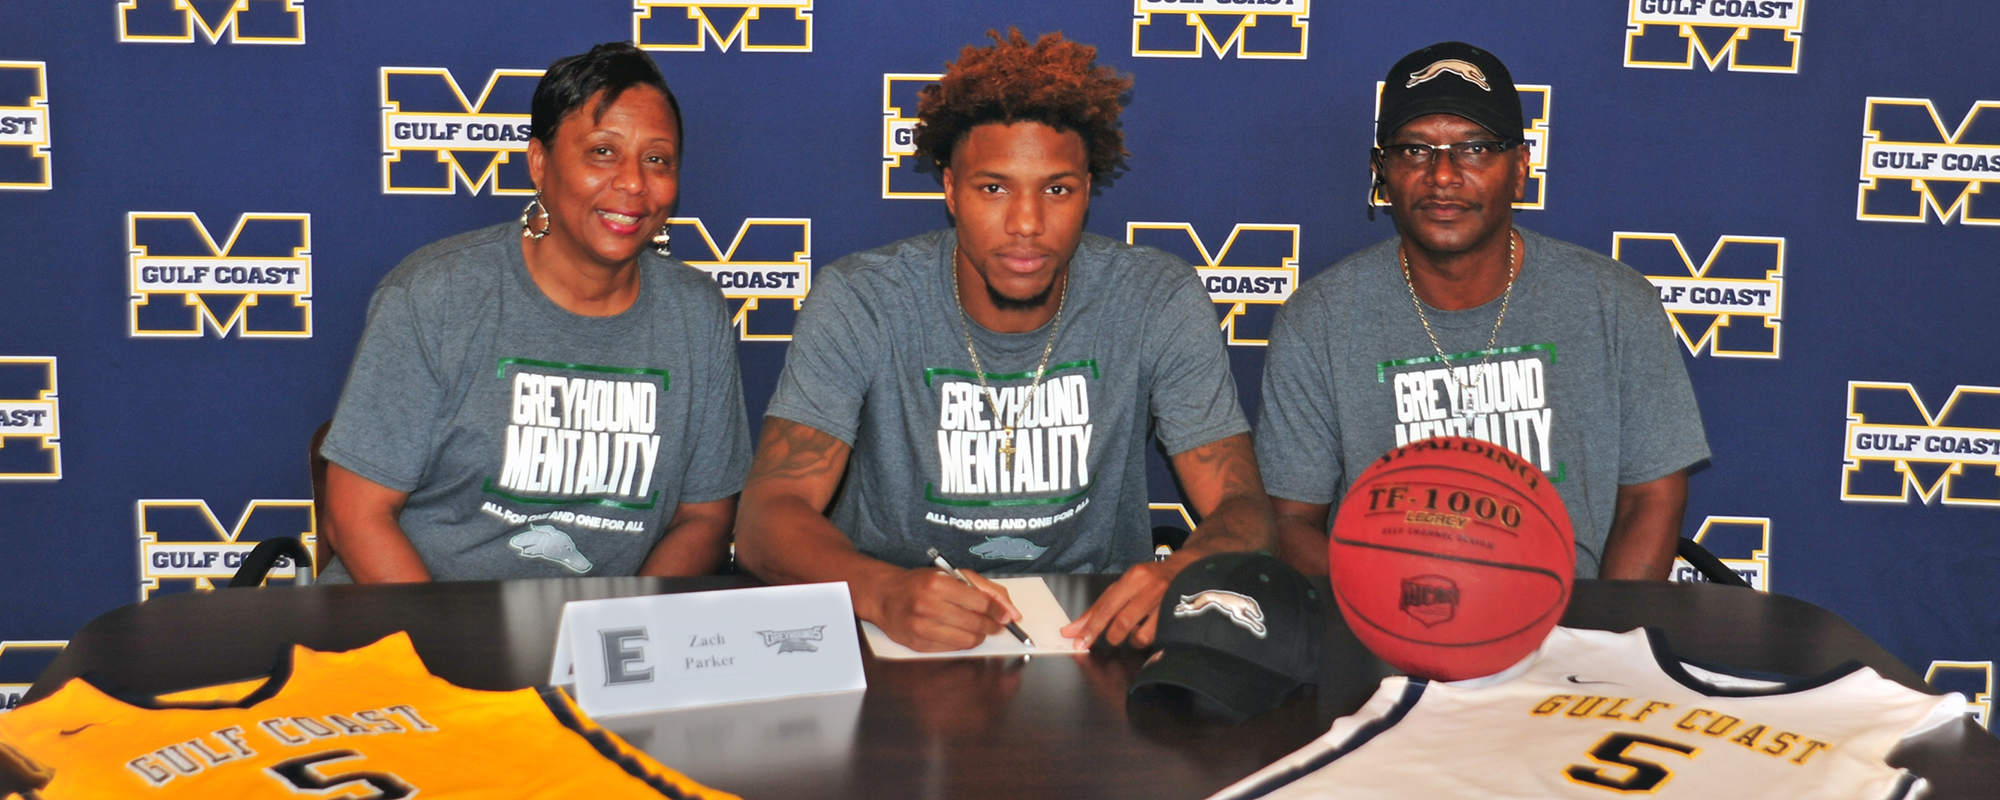 Parker signs with ENMU